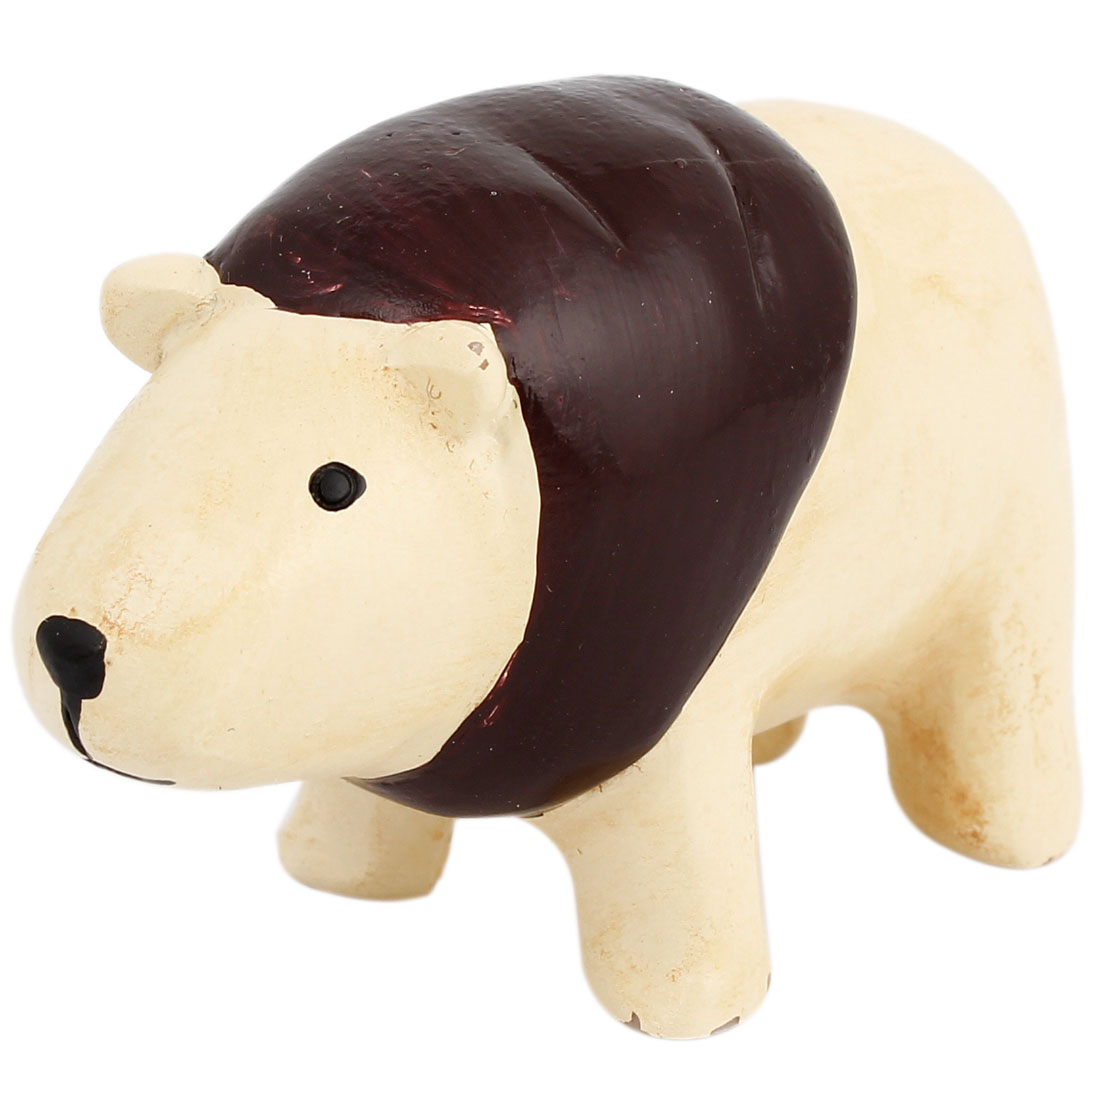 Tabletop Adorn Handmade Craft Bear Shape Decor Brown Beige